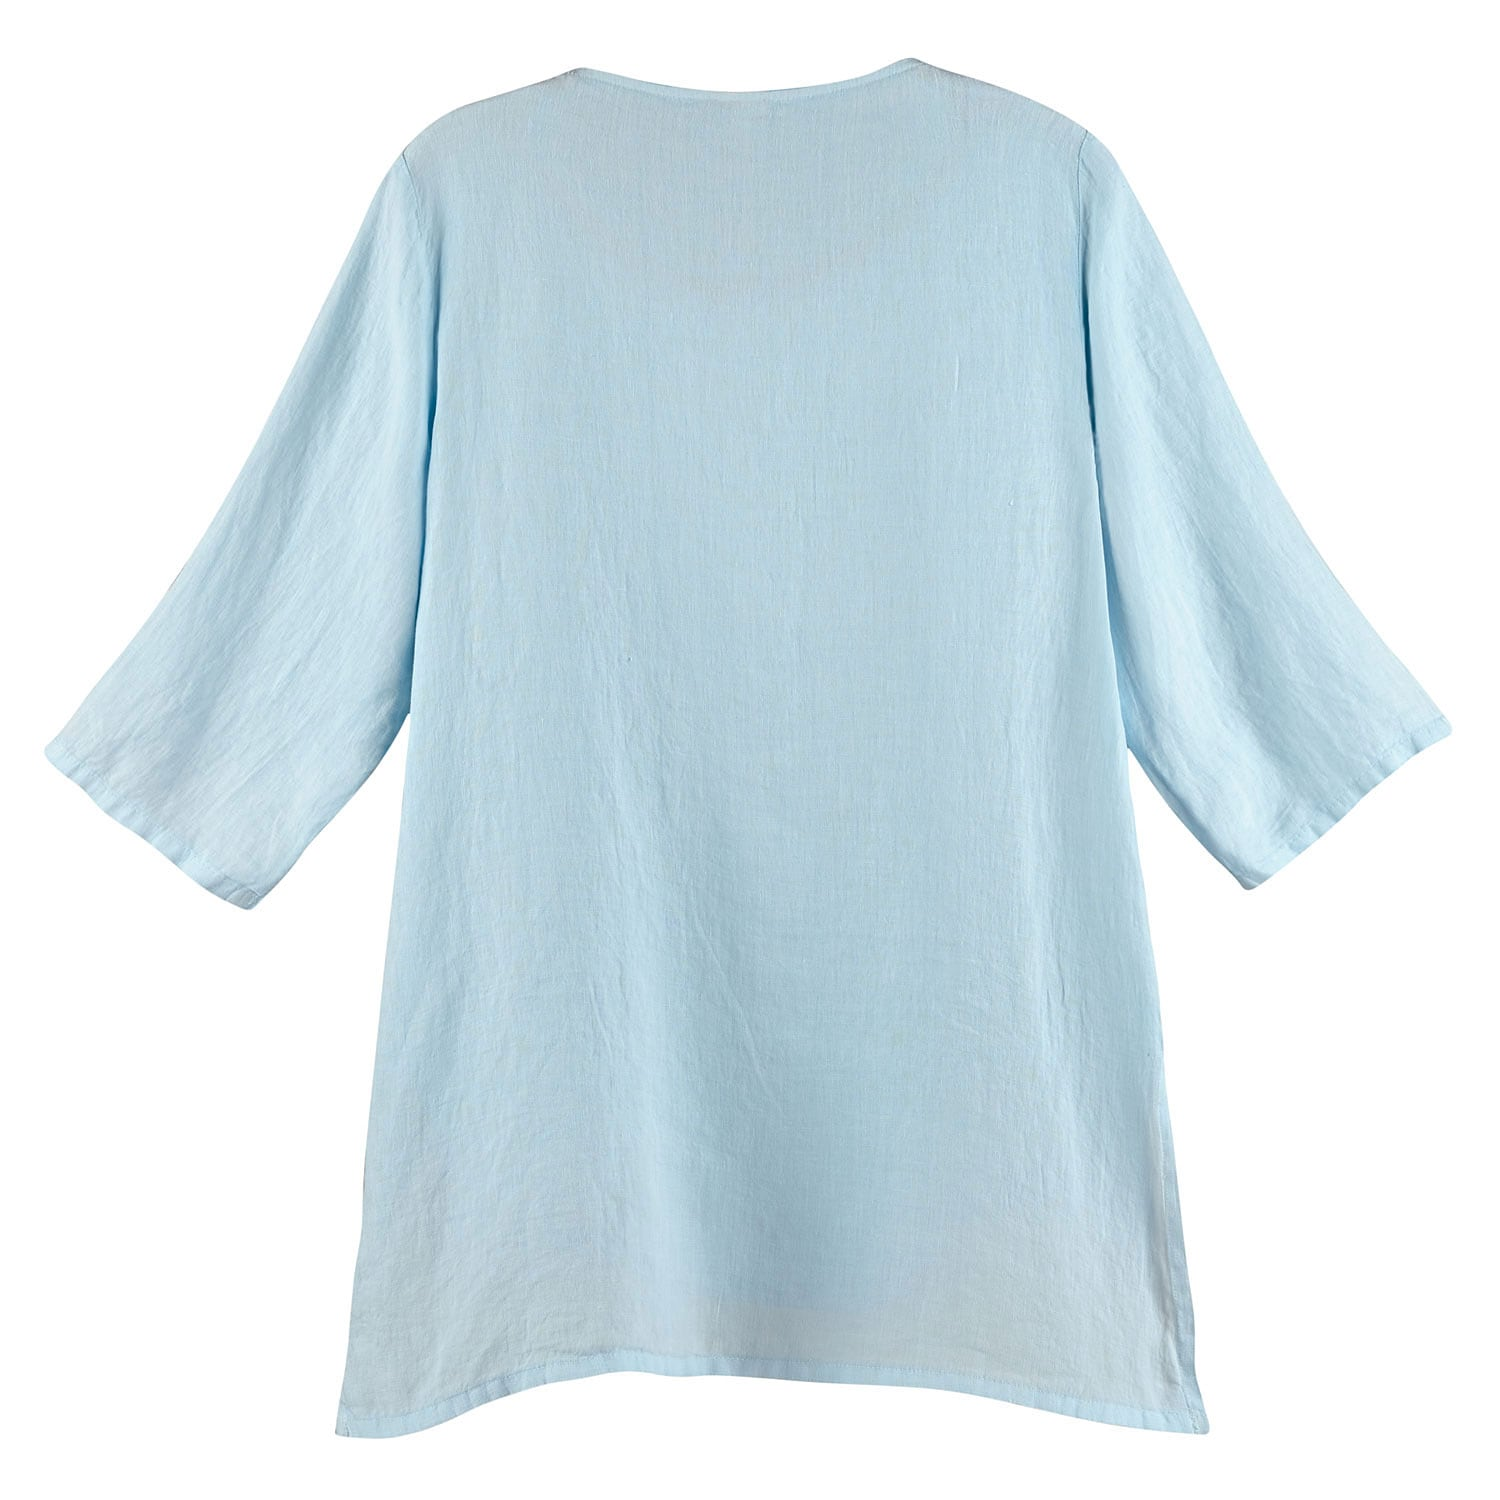 thumbnail 8 - Women's Tunic Top - Long Layered Linen Blouse with 3/4 Sleeves